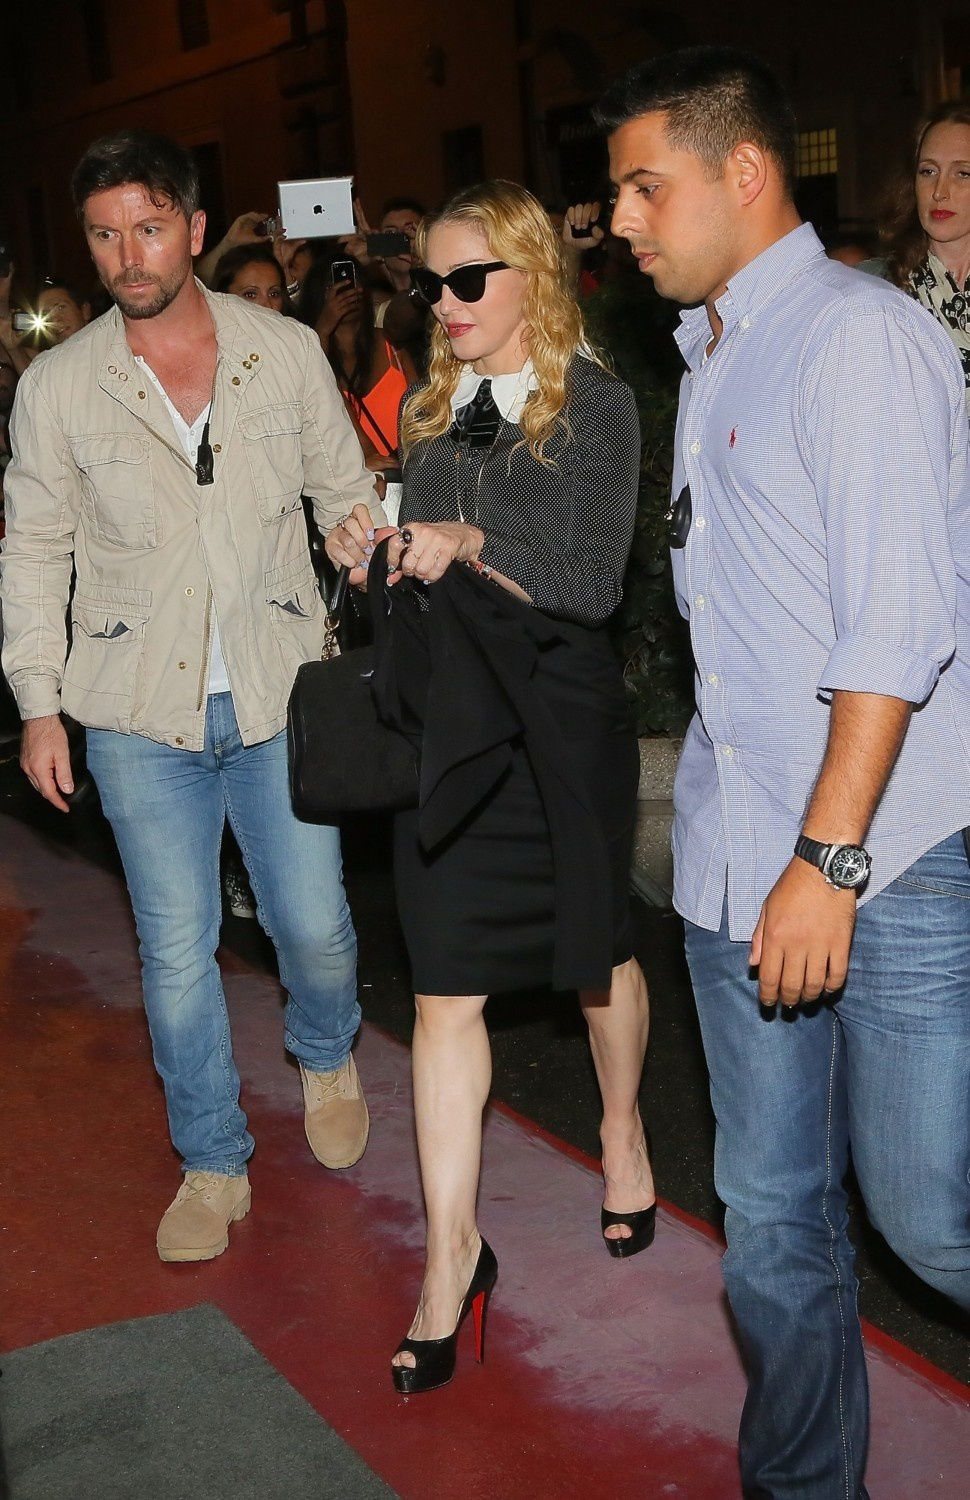 http://a405.idata.over-blog.com/5/47/08/55/2013-dossier-4/20130821-pictures-madonna-hard-candy-fitness-center-rome-04.jpg